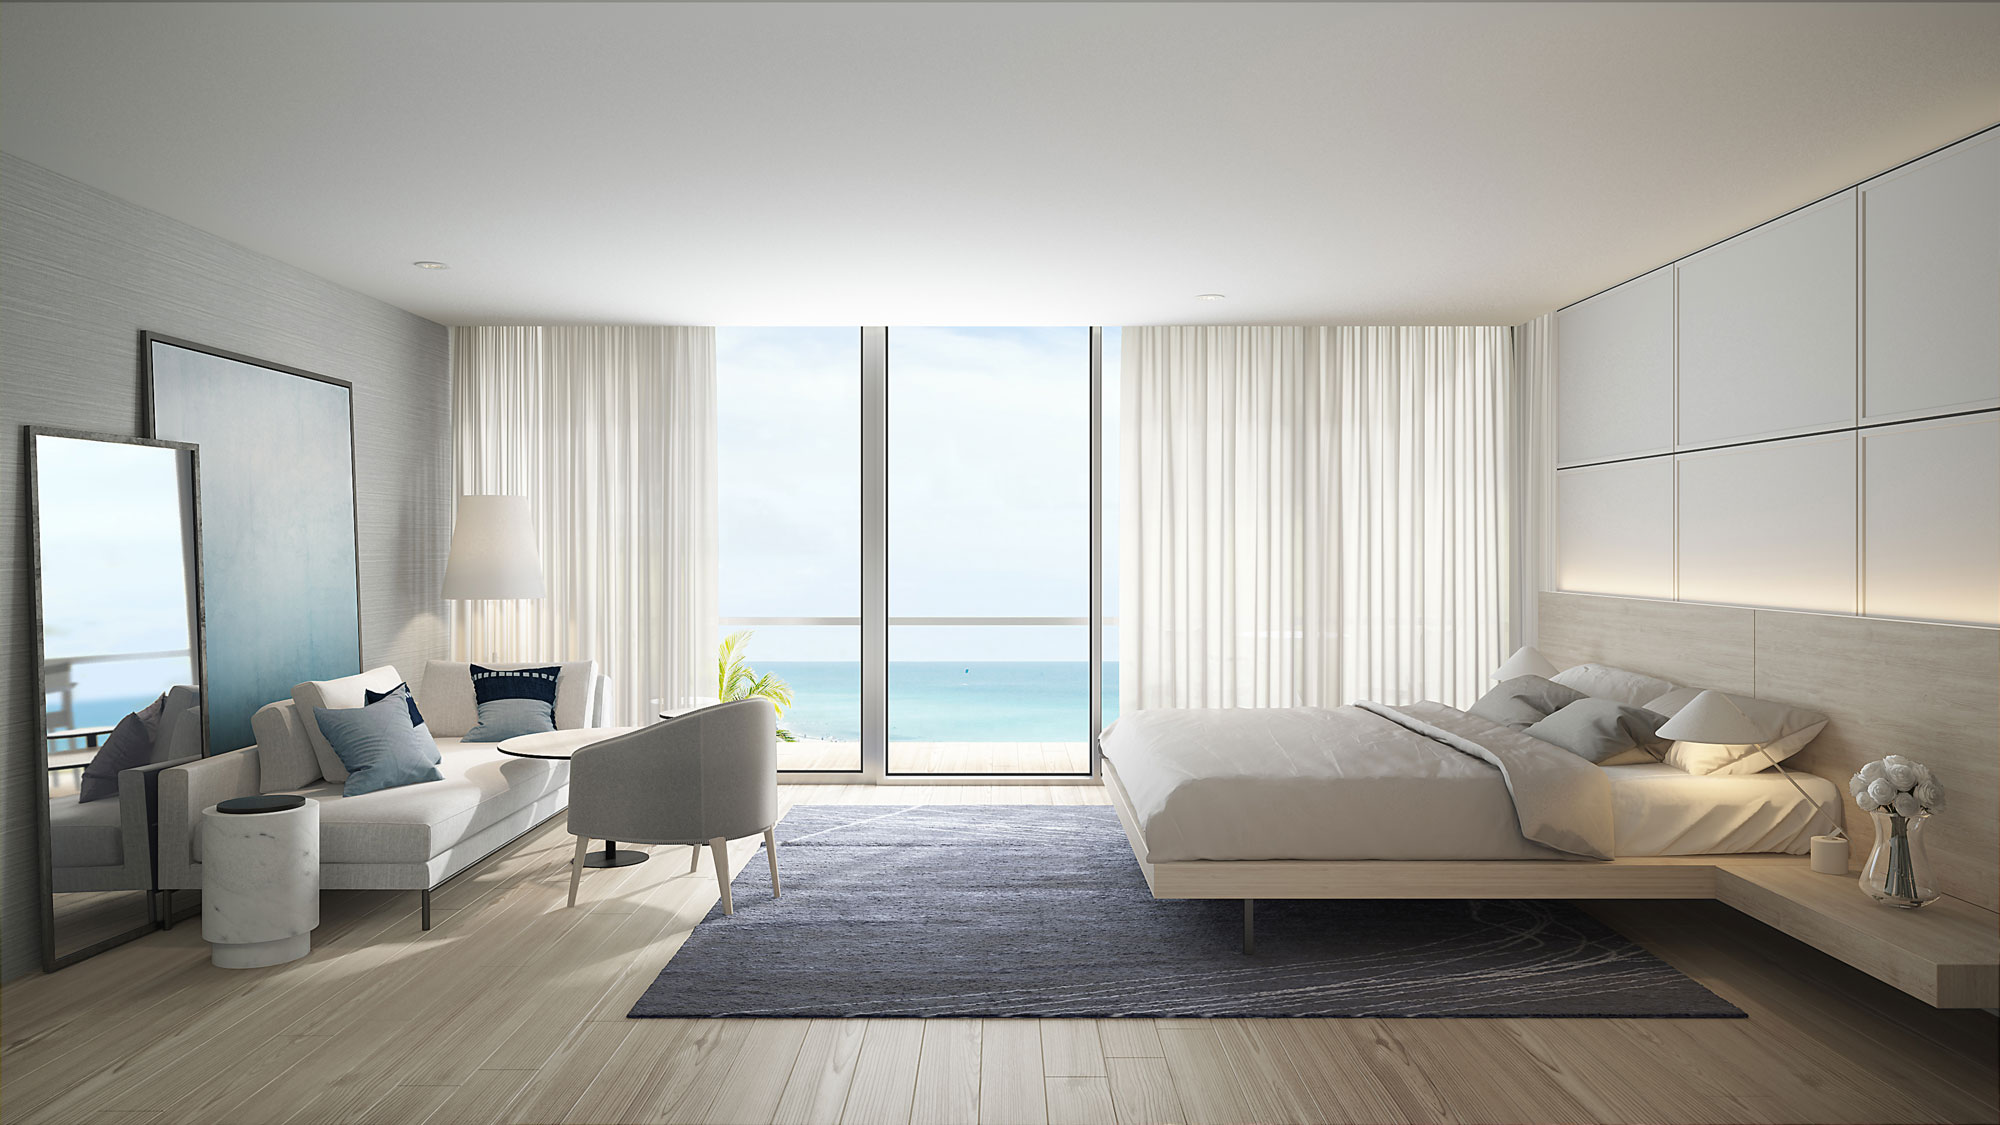 Interior of guestroom with ocean view at the Celino South Beach